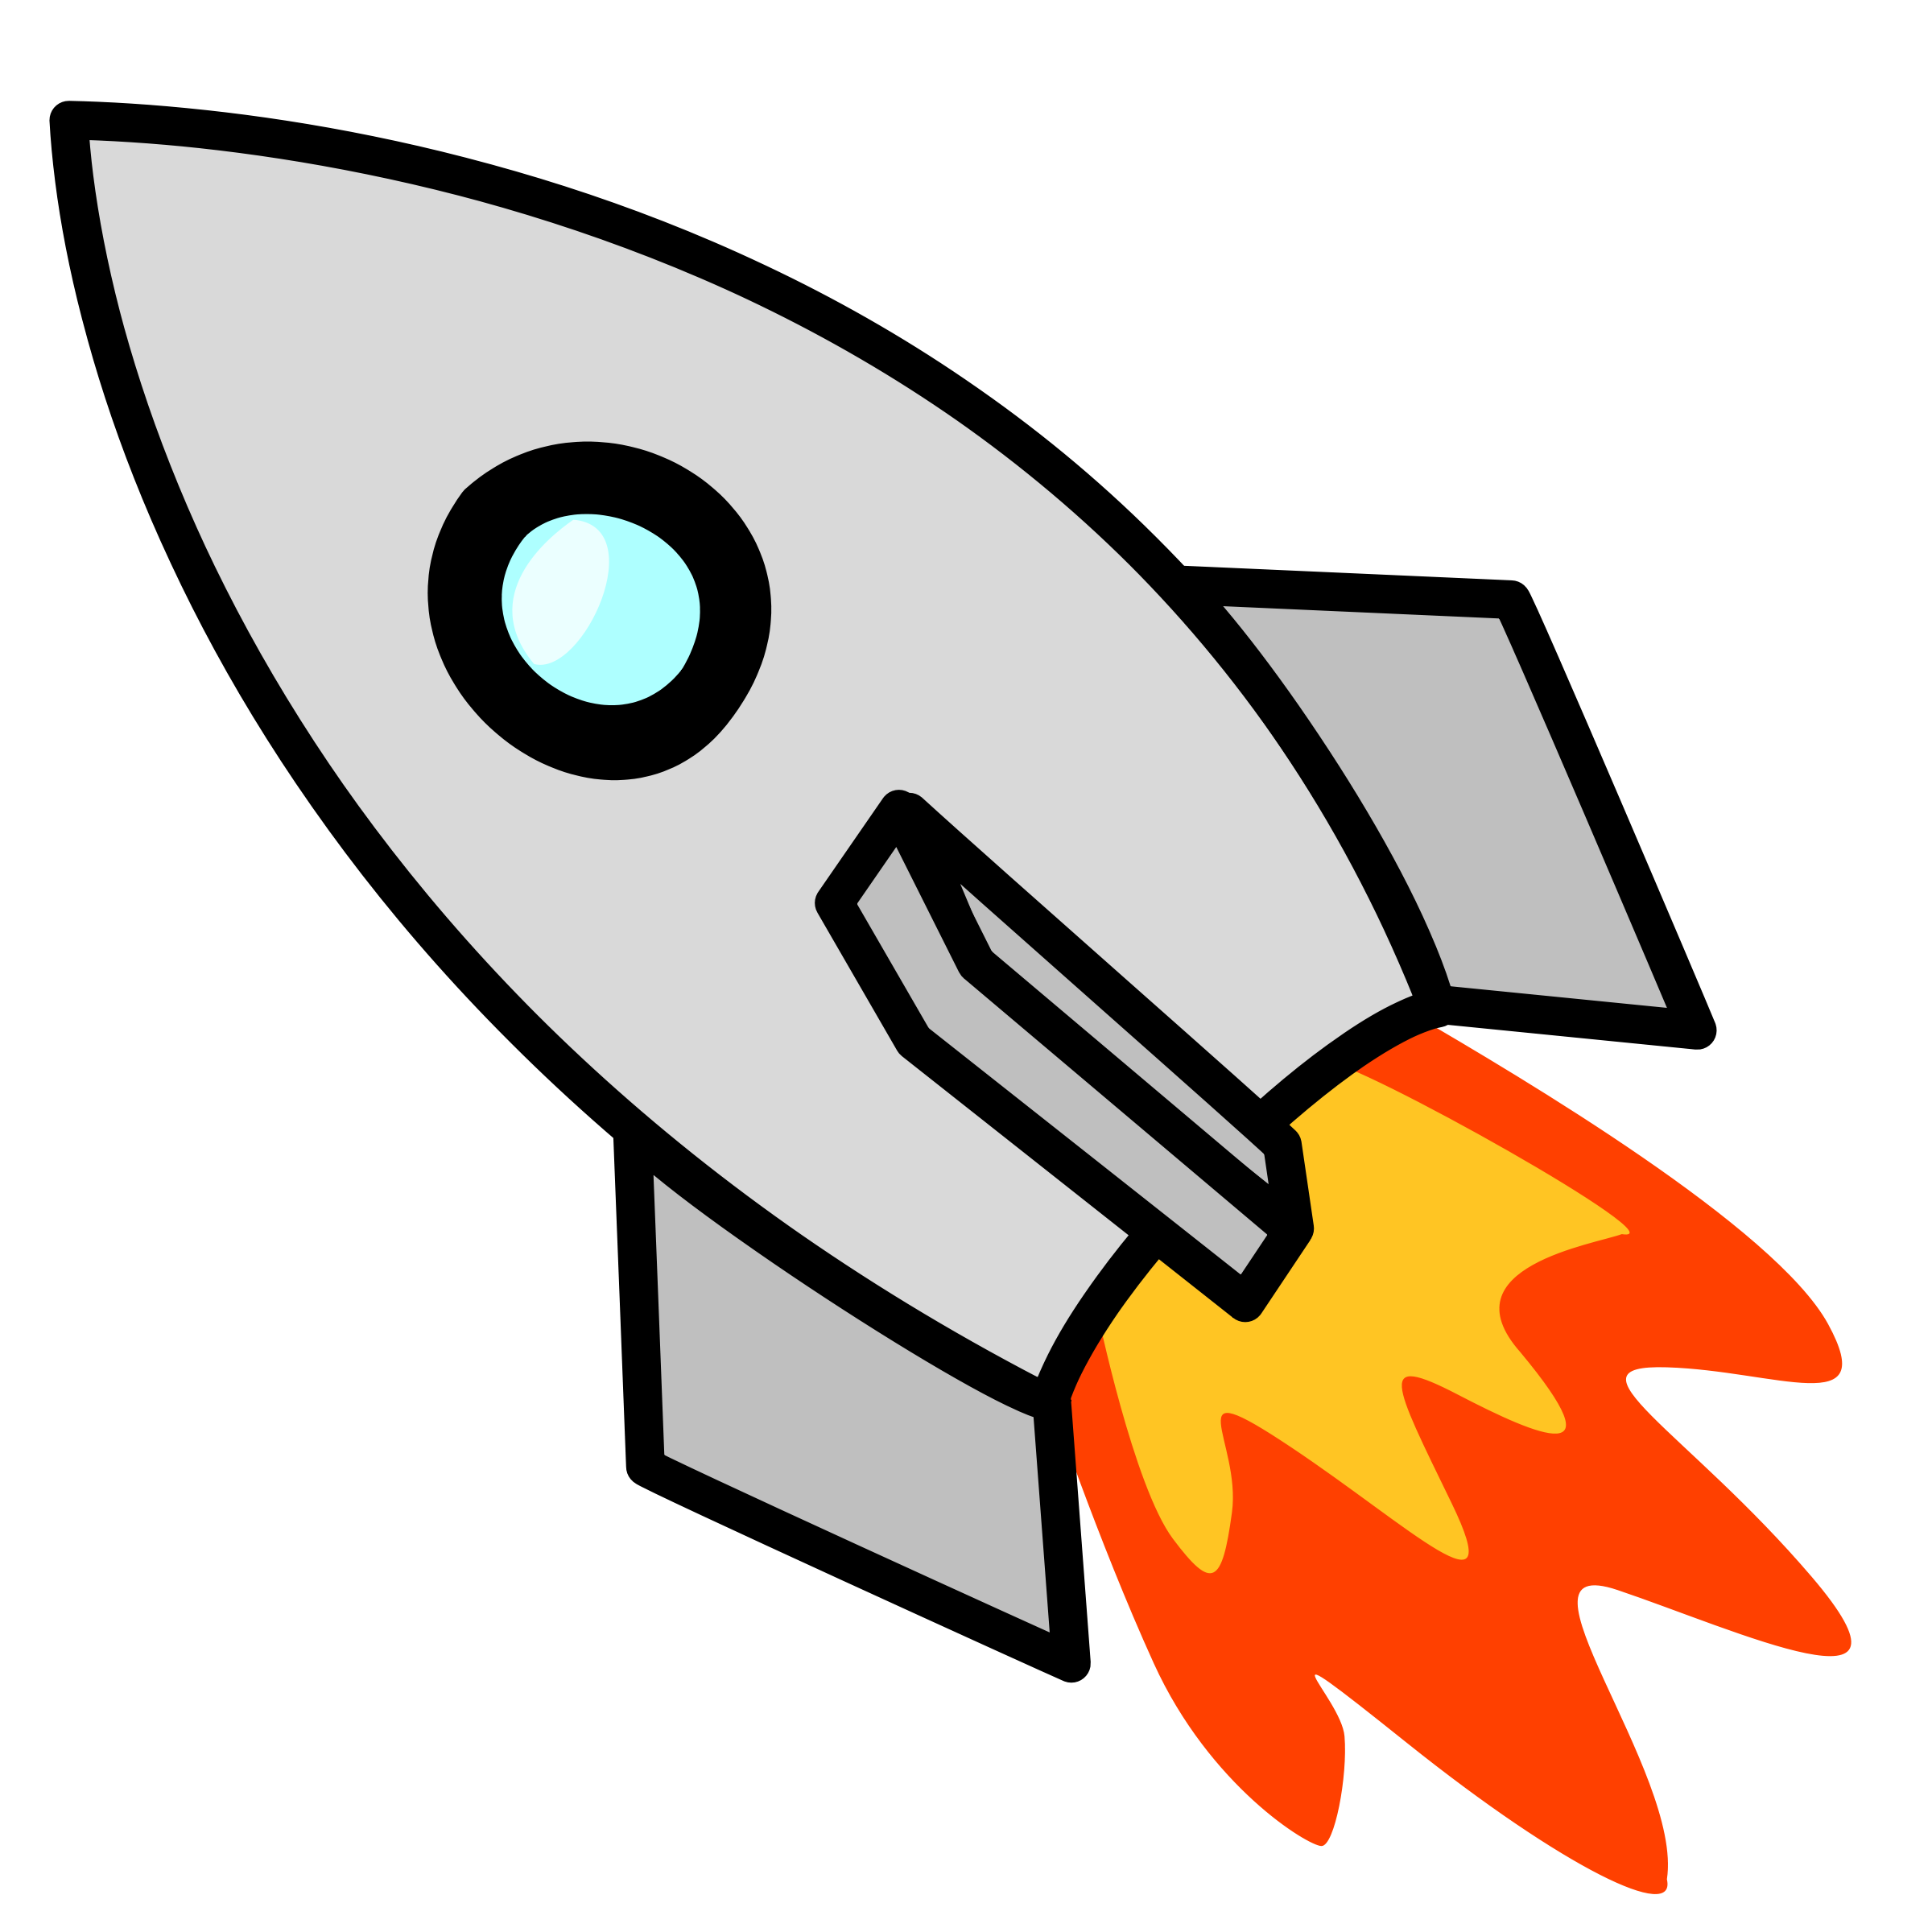 2400x2400 Collection Of Cute Rocket Clipart High Quality, Free